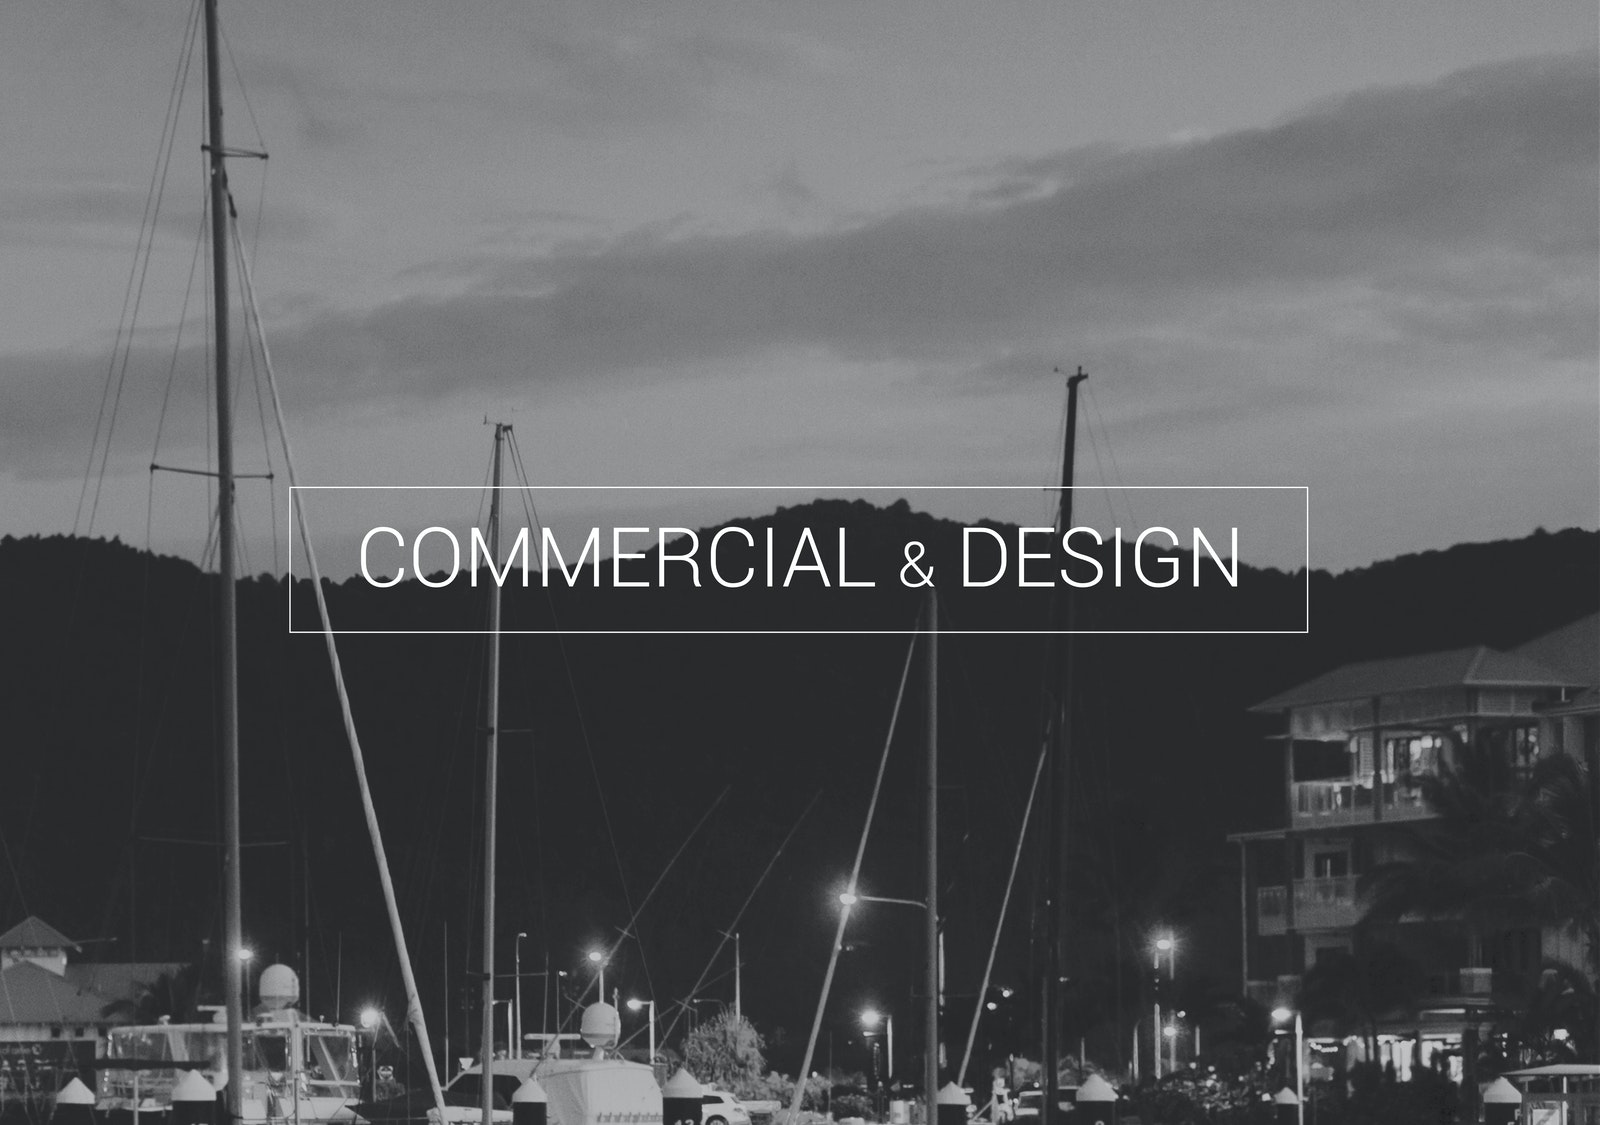 Commercial & Design